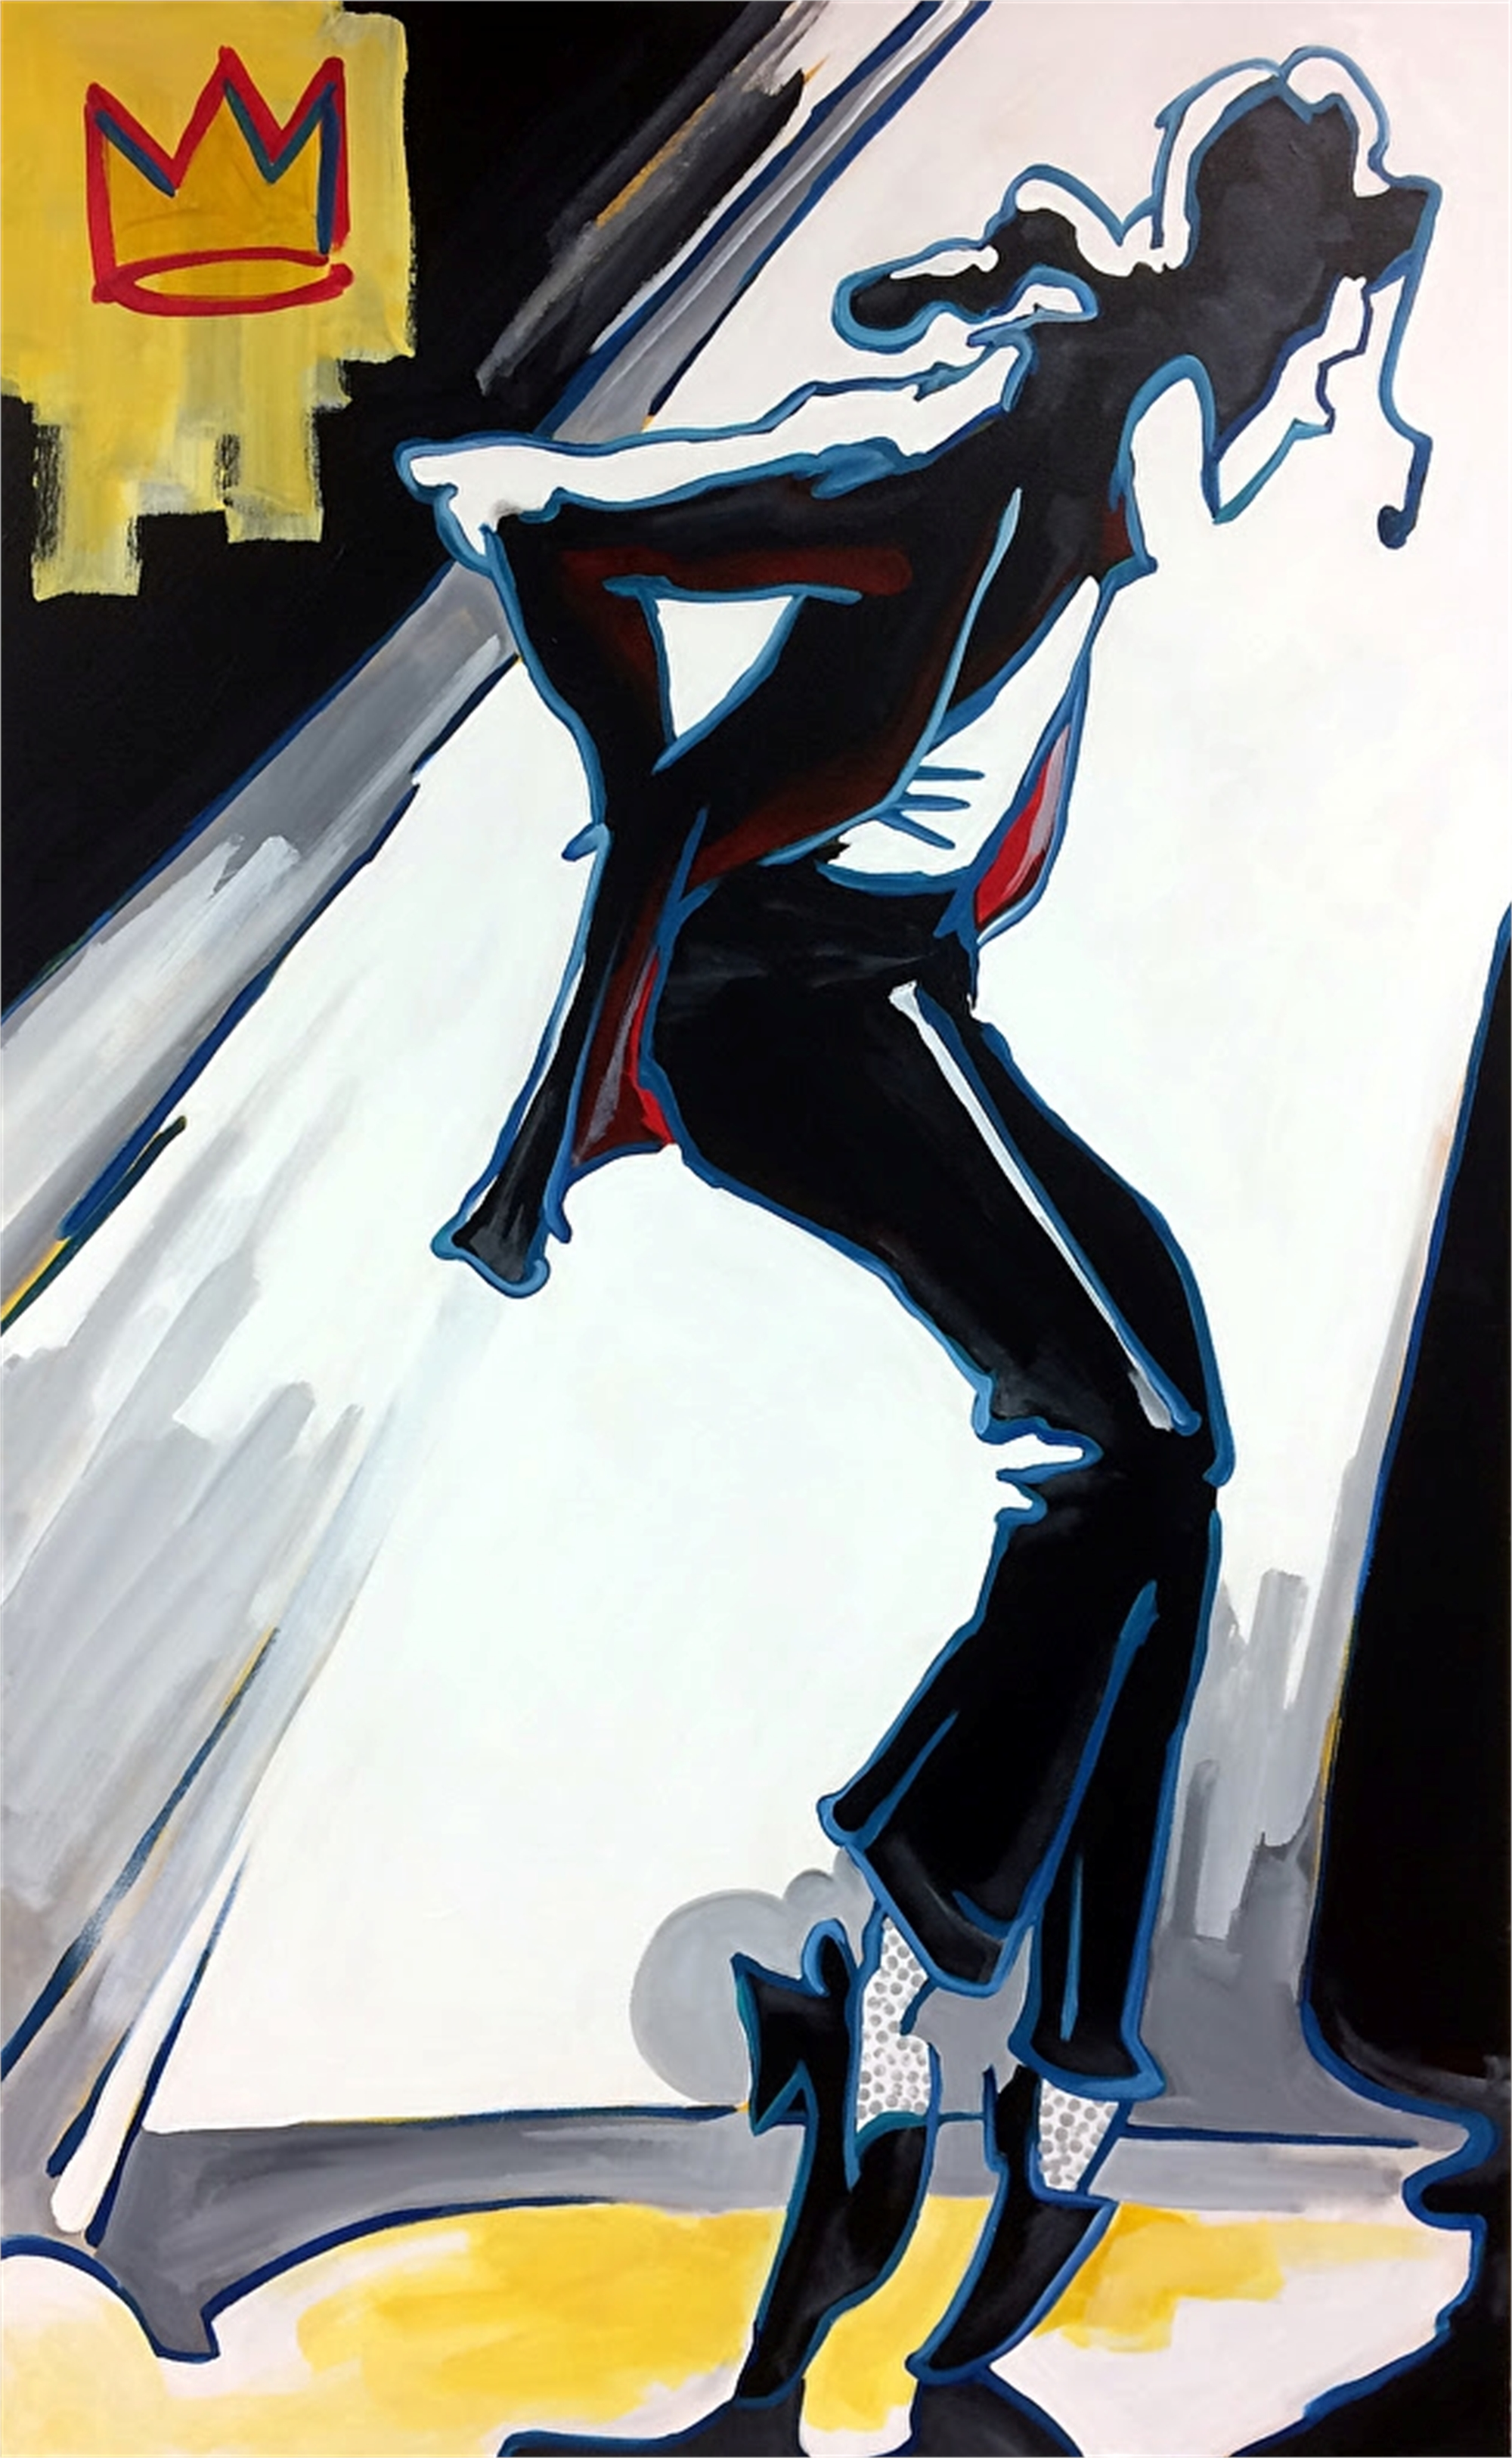 MJ the King by Nate Pack